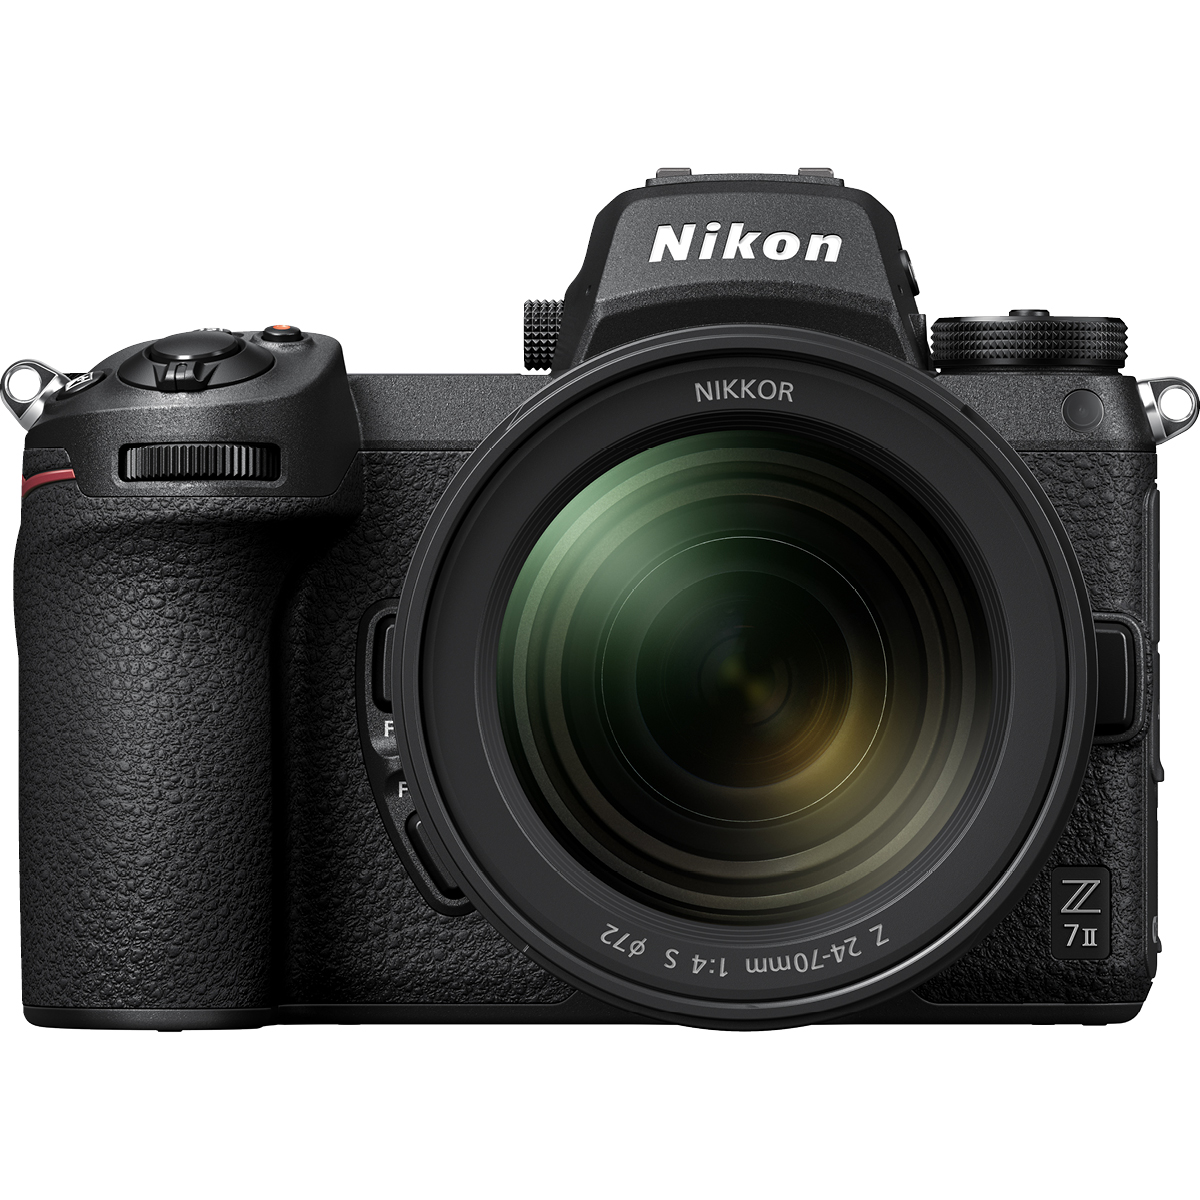 Nikon Z7 II Kit mit 24-70 mm 1:4,0 + FTZ-Adapter